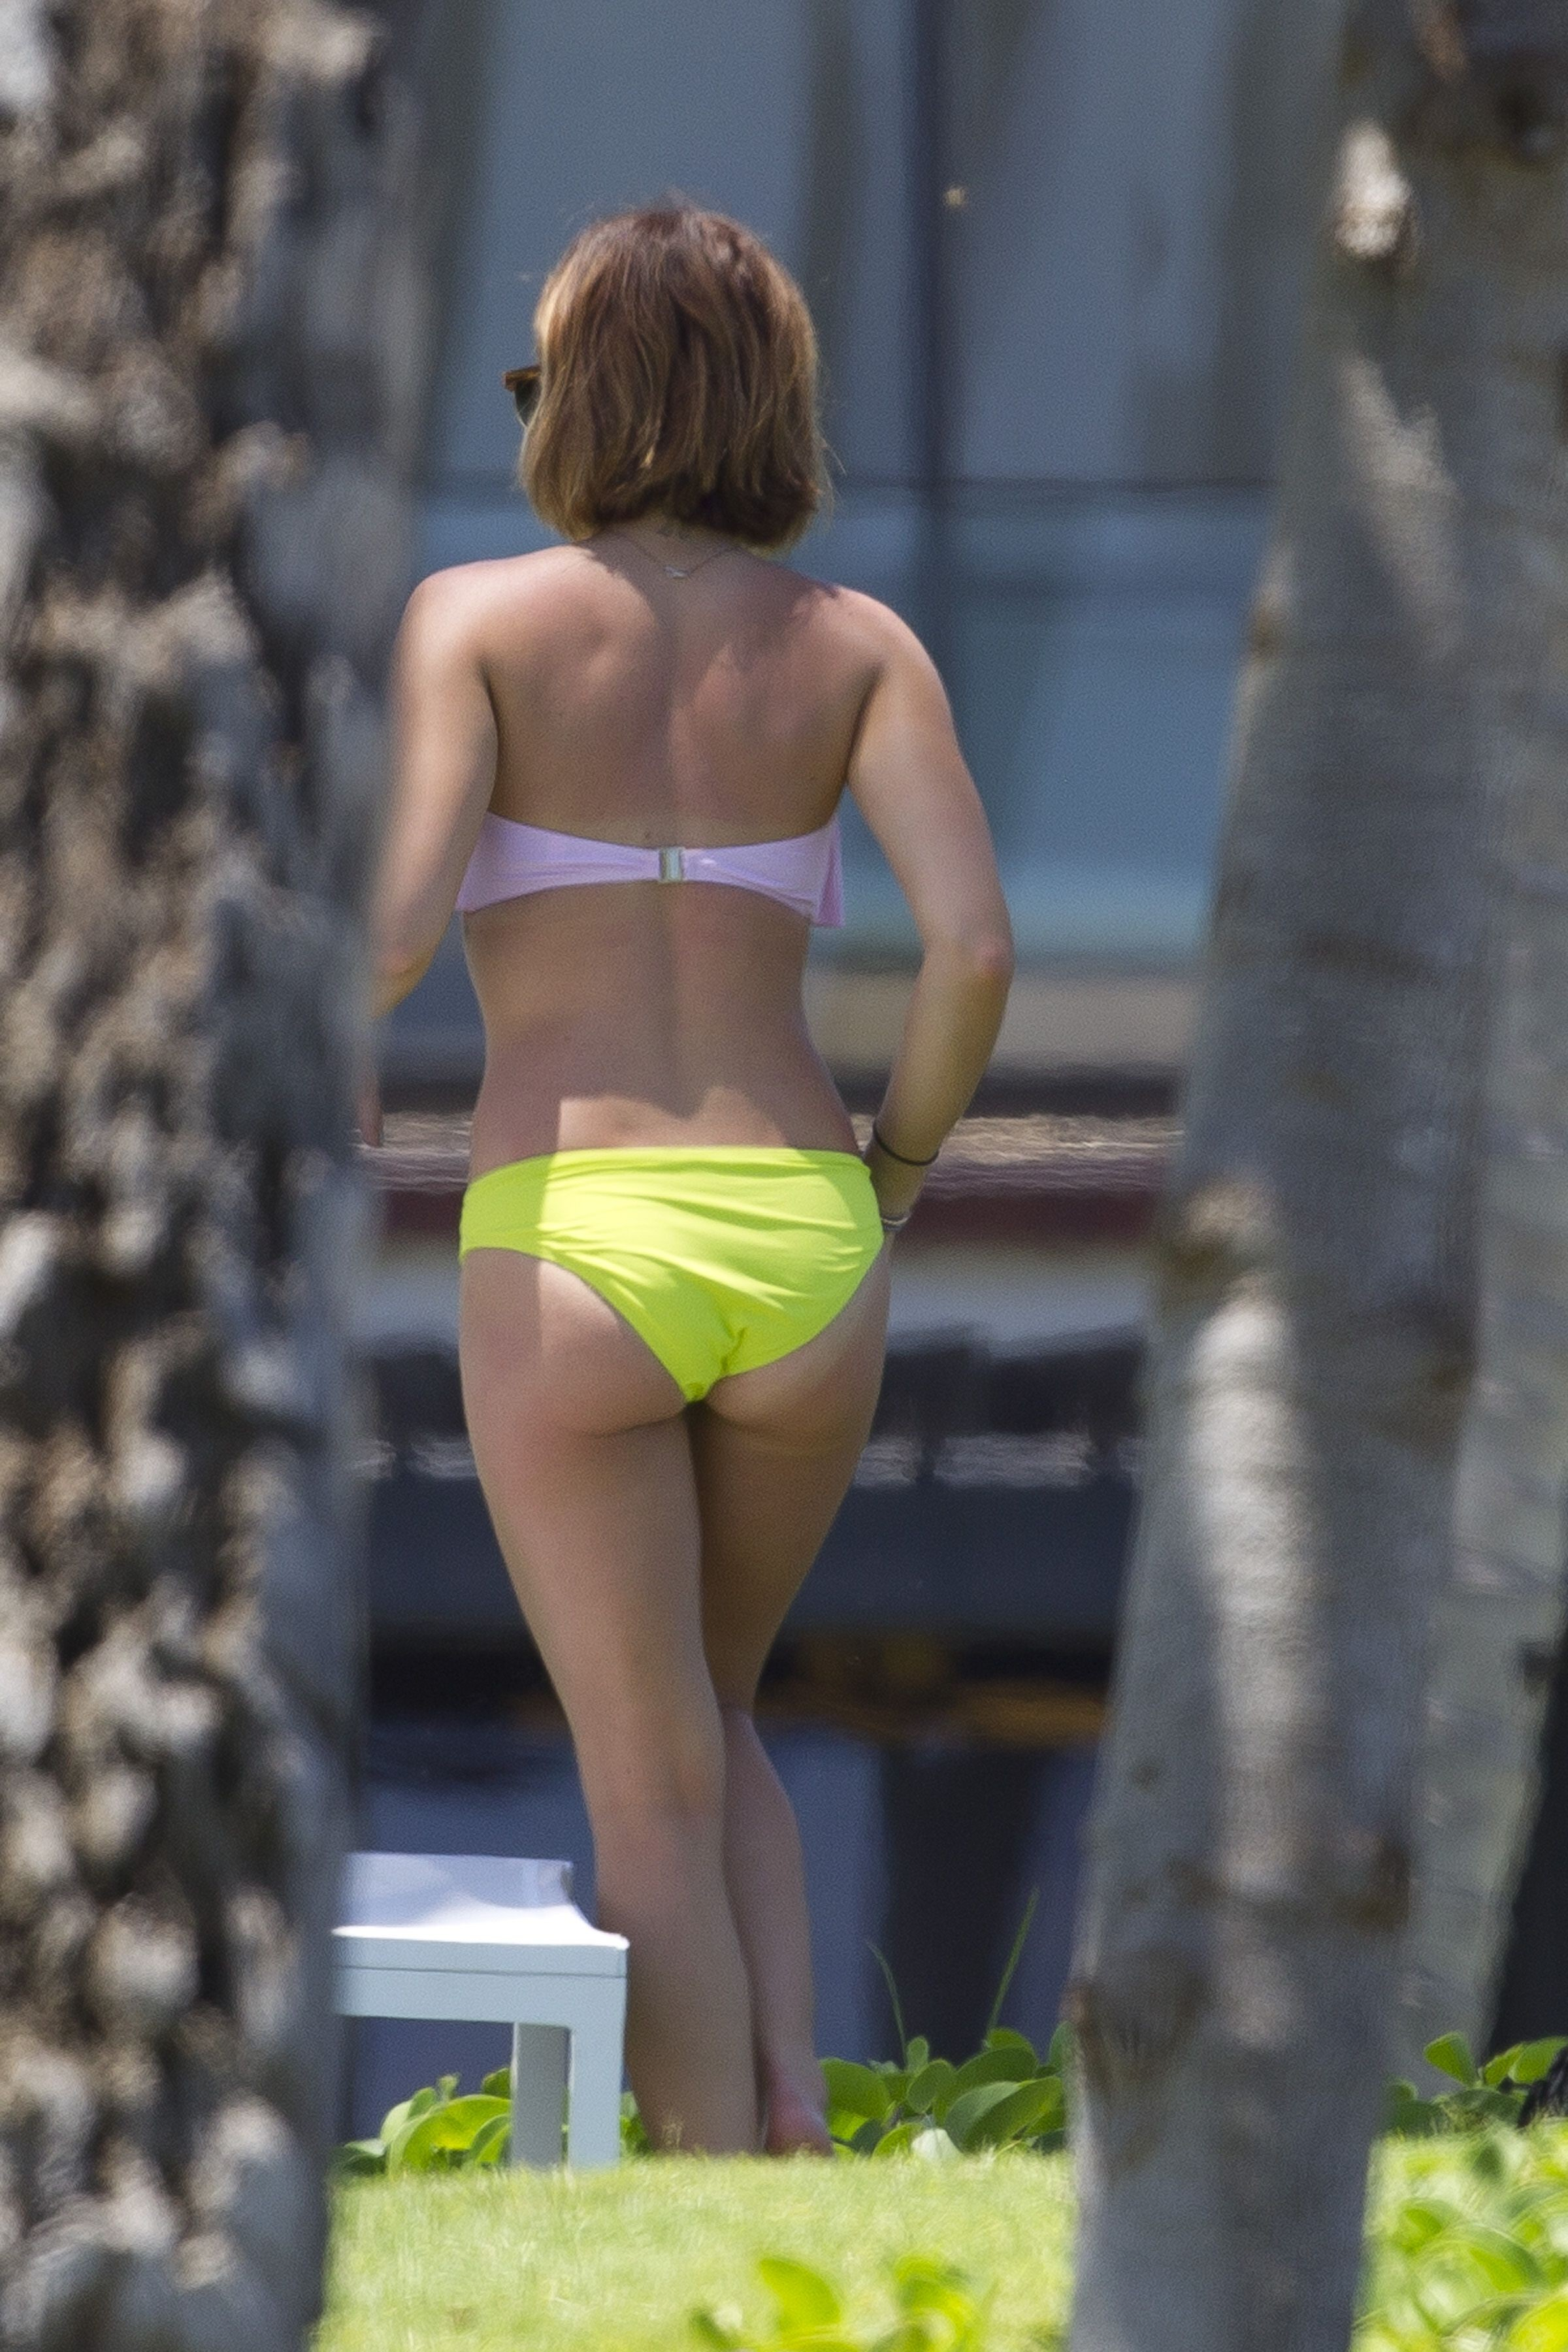 Lucy hale nude best quality - 1 part 3